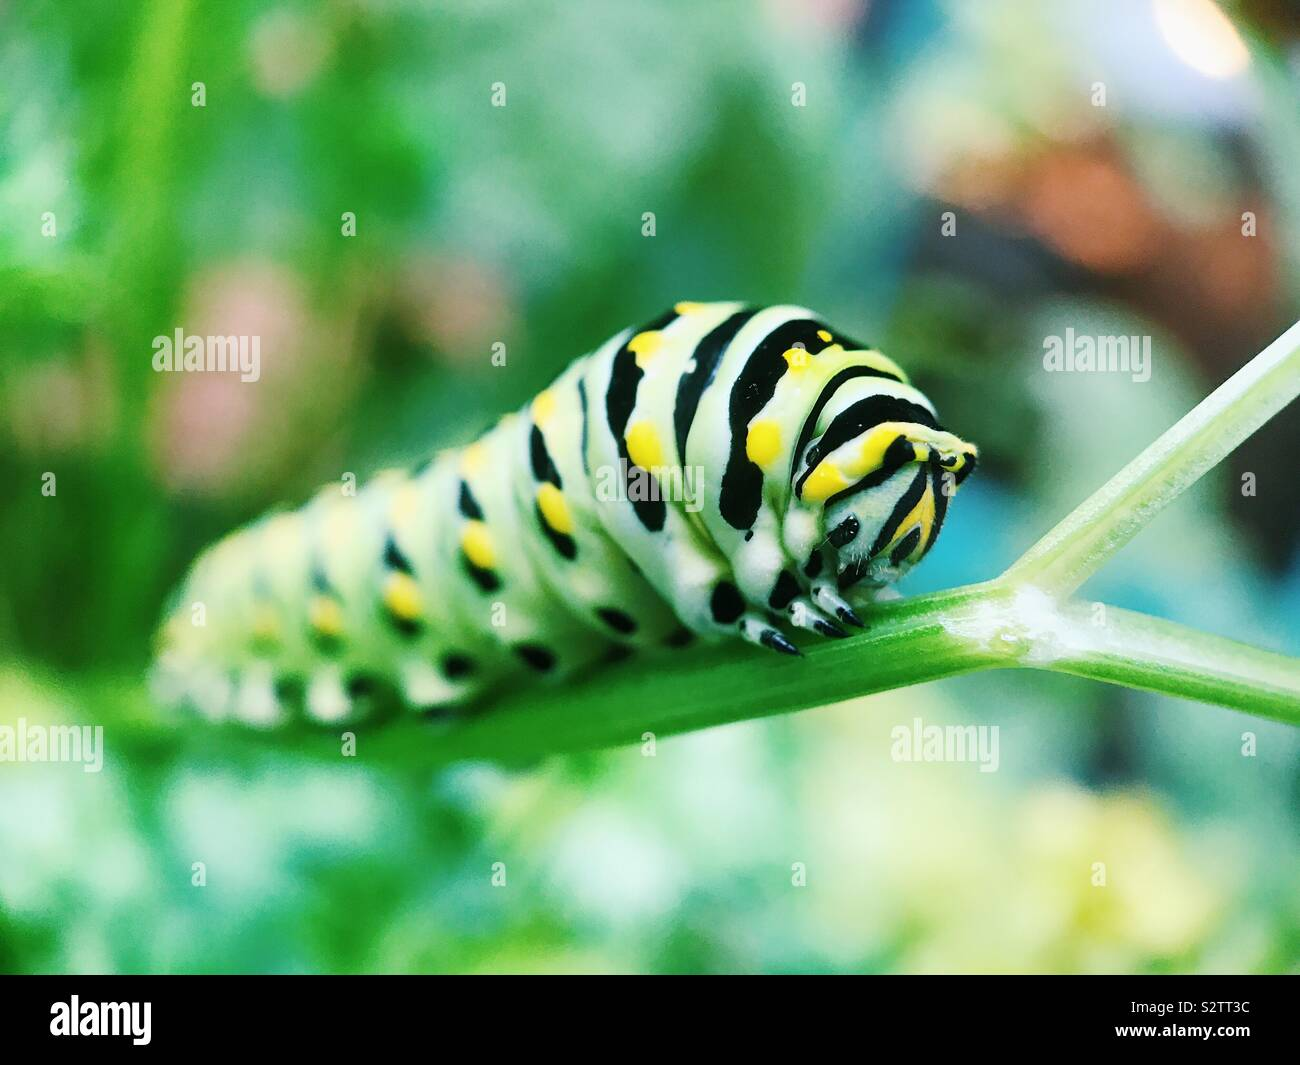 Macro of a swallowtail caterpillar resting on a parsley plant in New Jersey, USA. Stock Photo